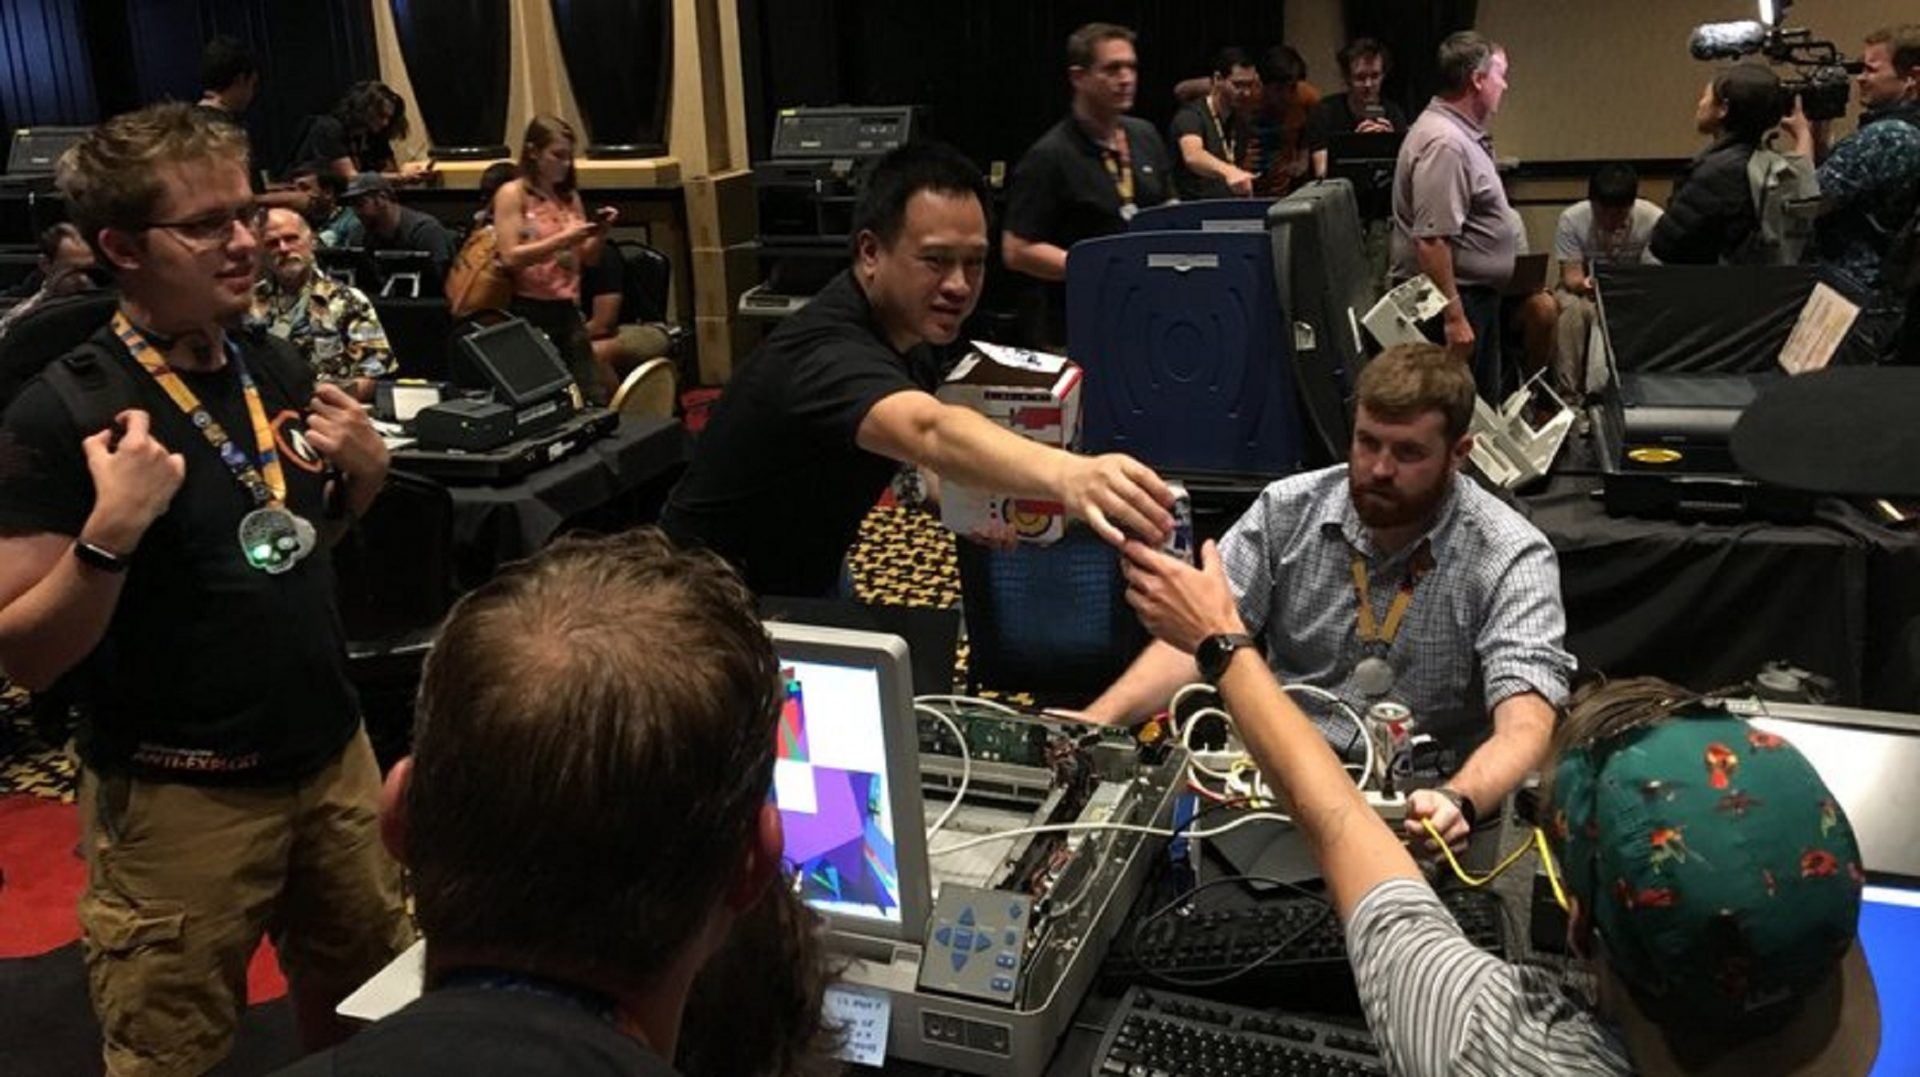 Hackers at this year's Def Con pass out beer as they mess with a voting machine that was used in last year's midterm elections in Virginia.